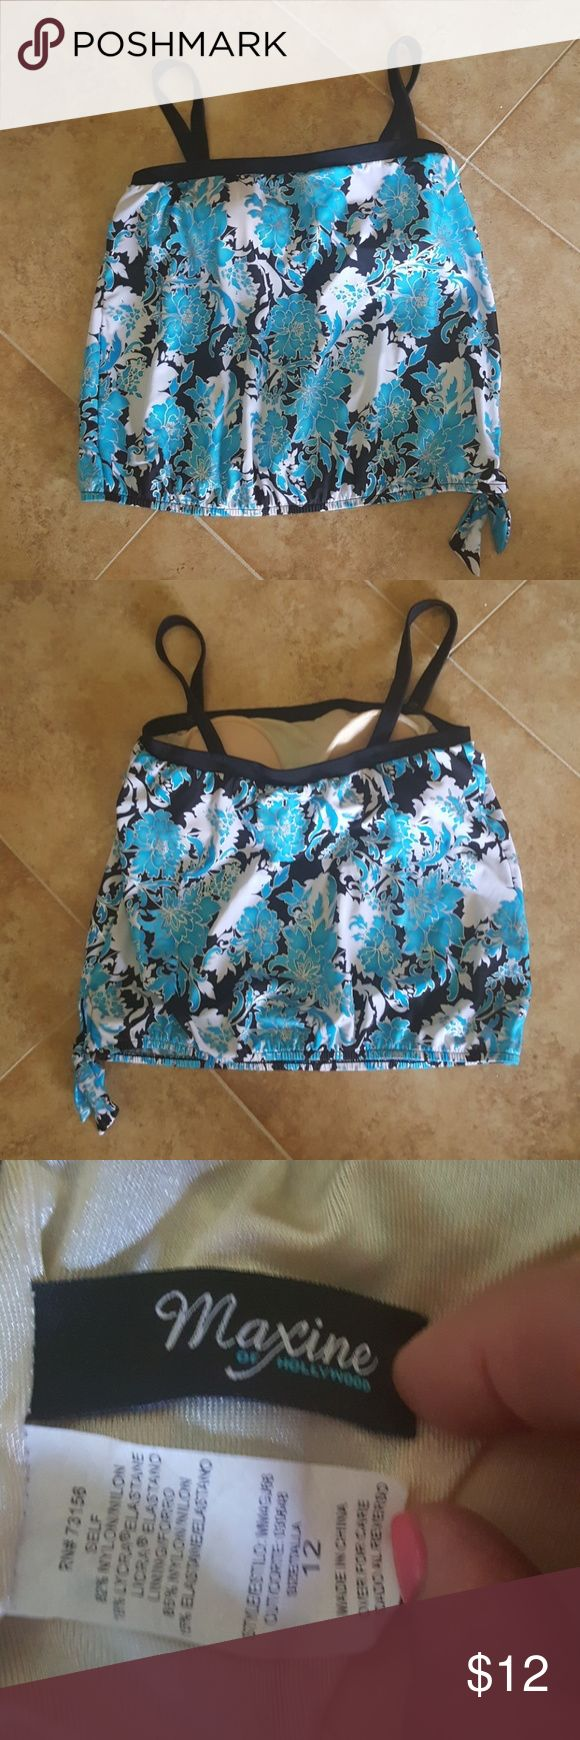 NWOT tankini top by Maxine of Hollywood Size 14 women's tankini top by Maxine of Hollywood. Bra insert and straps can be removed. Maxine of Hollywood Swim